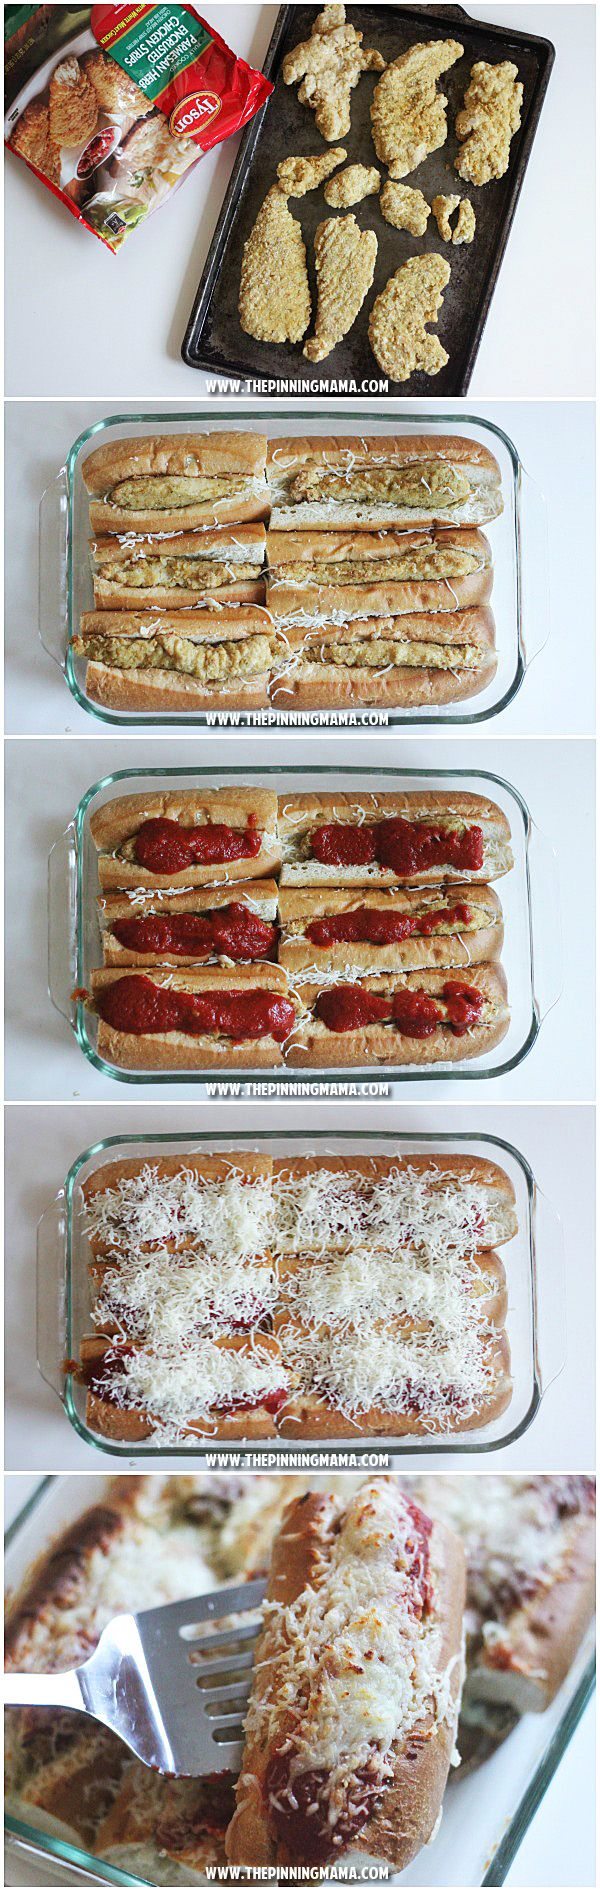 Easy Chicken Parmesan Sub Bake Recipe